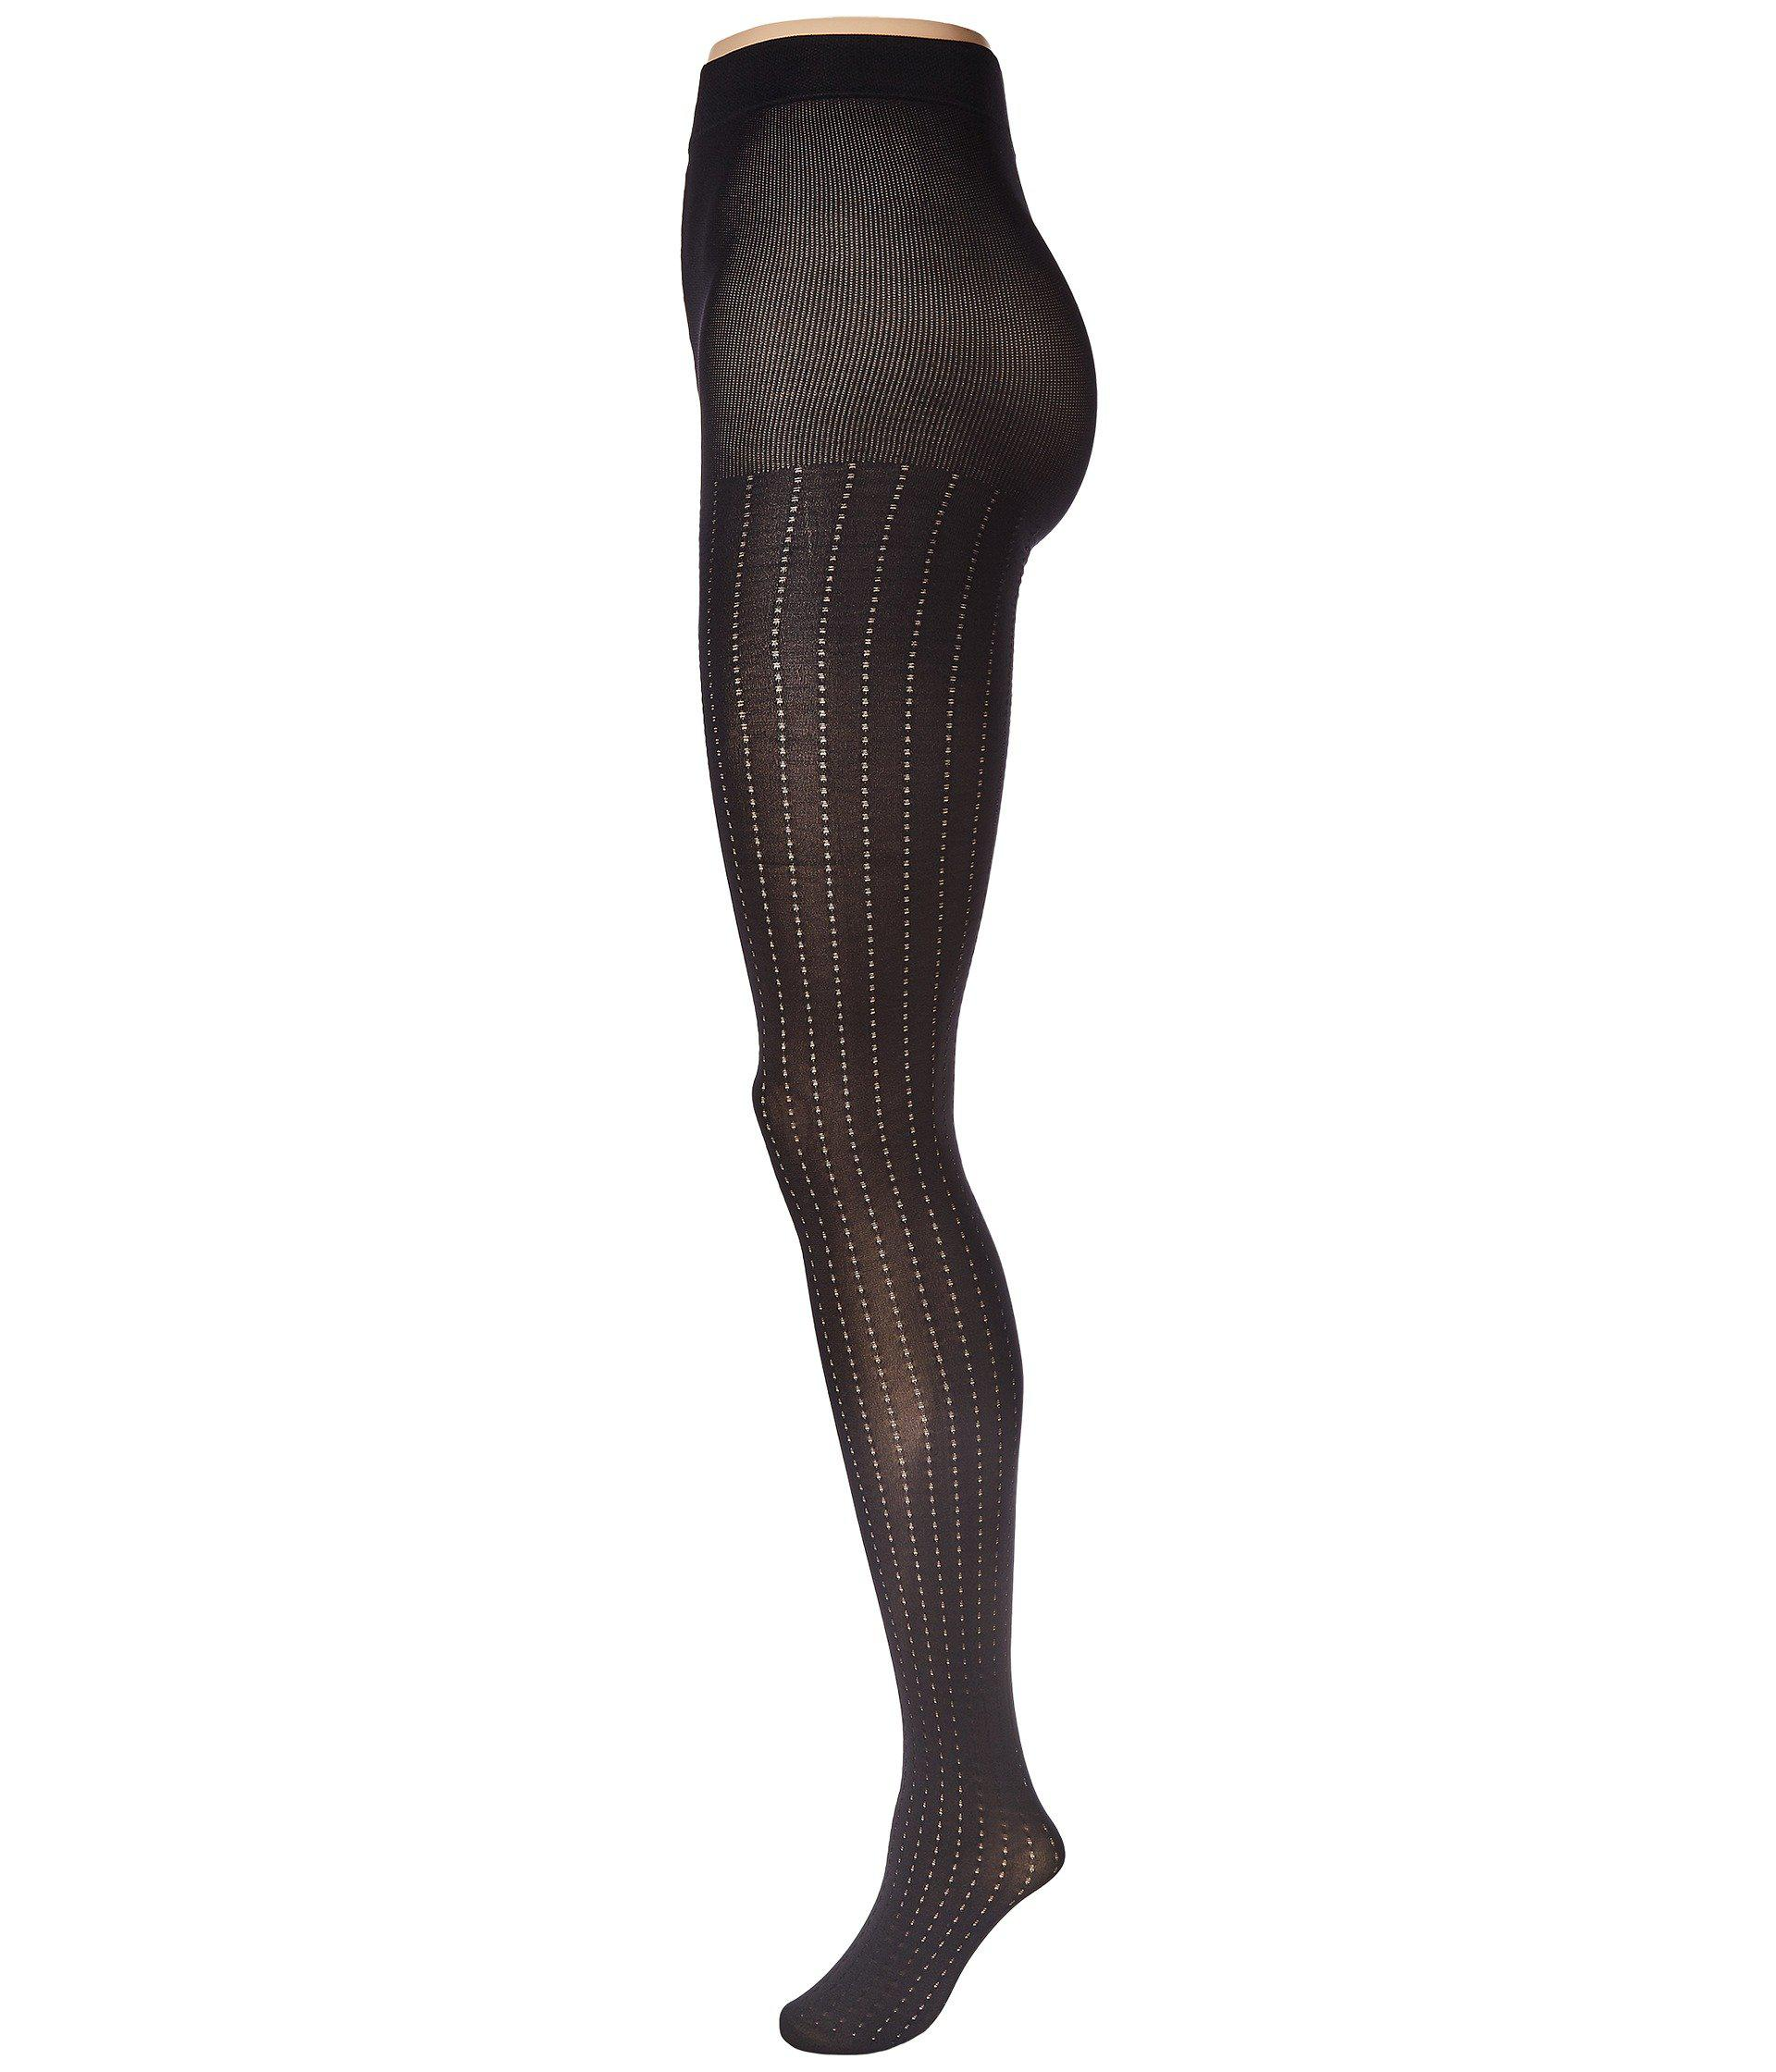 41aae1863 Lyst - Pretty Polly Vertical Pattern Tights (black) Hose in Black